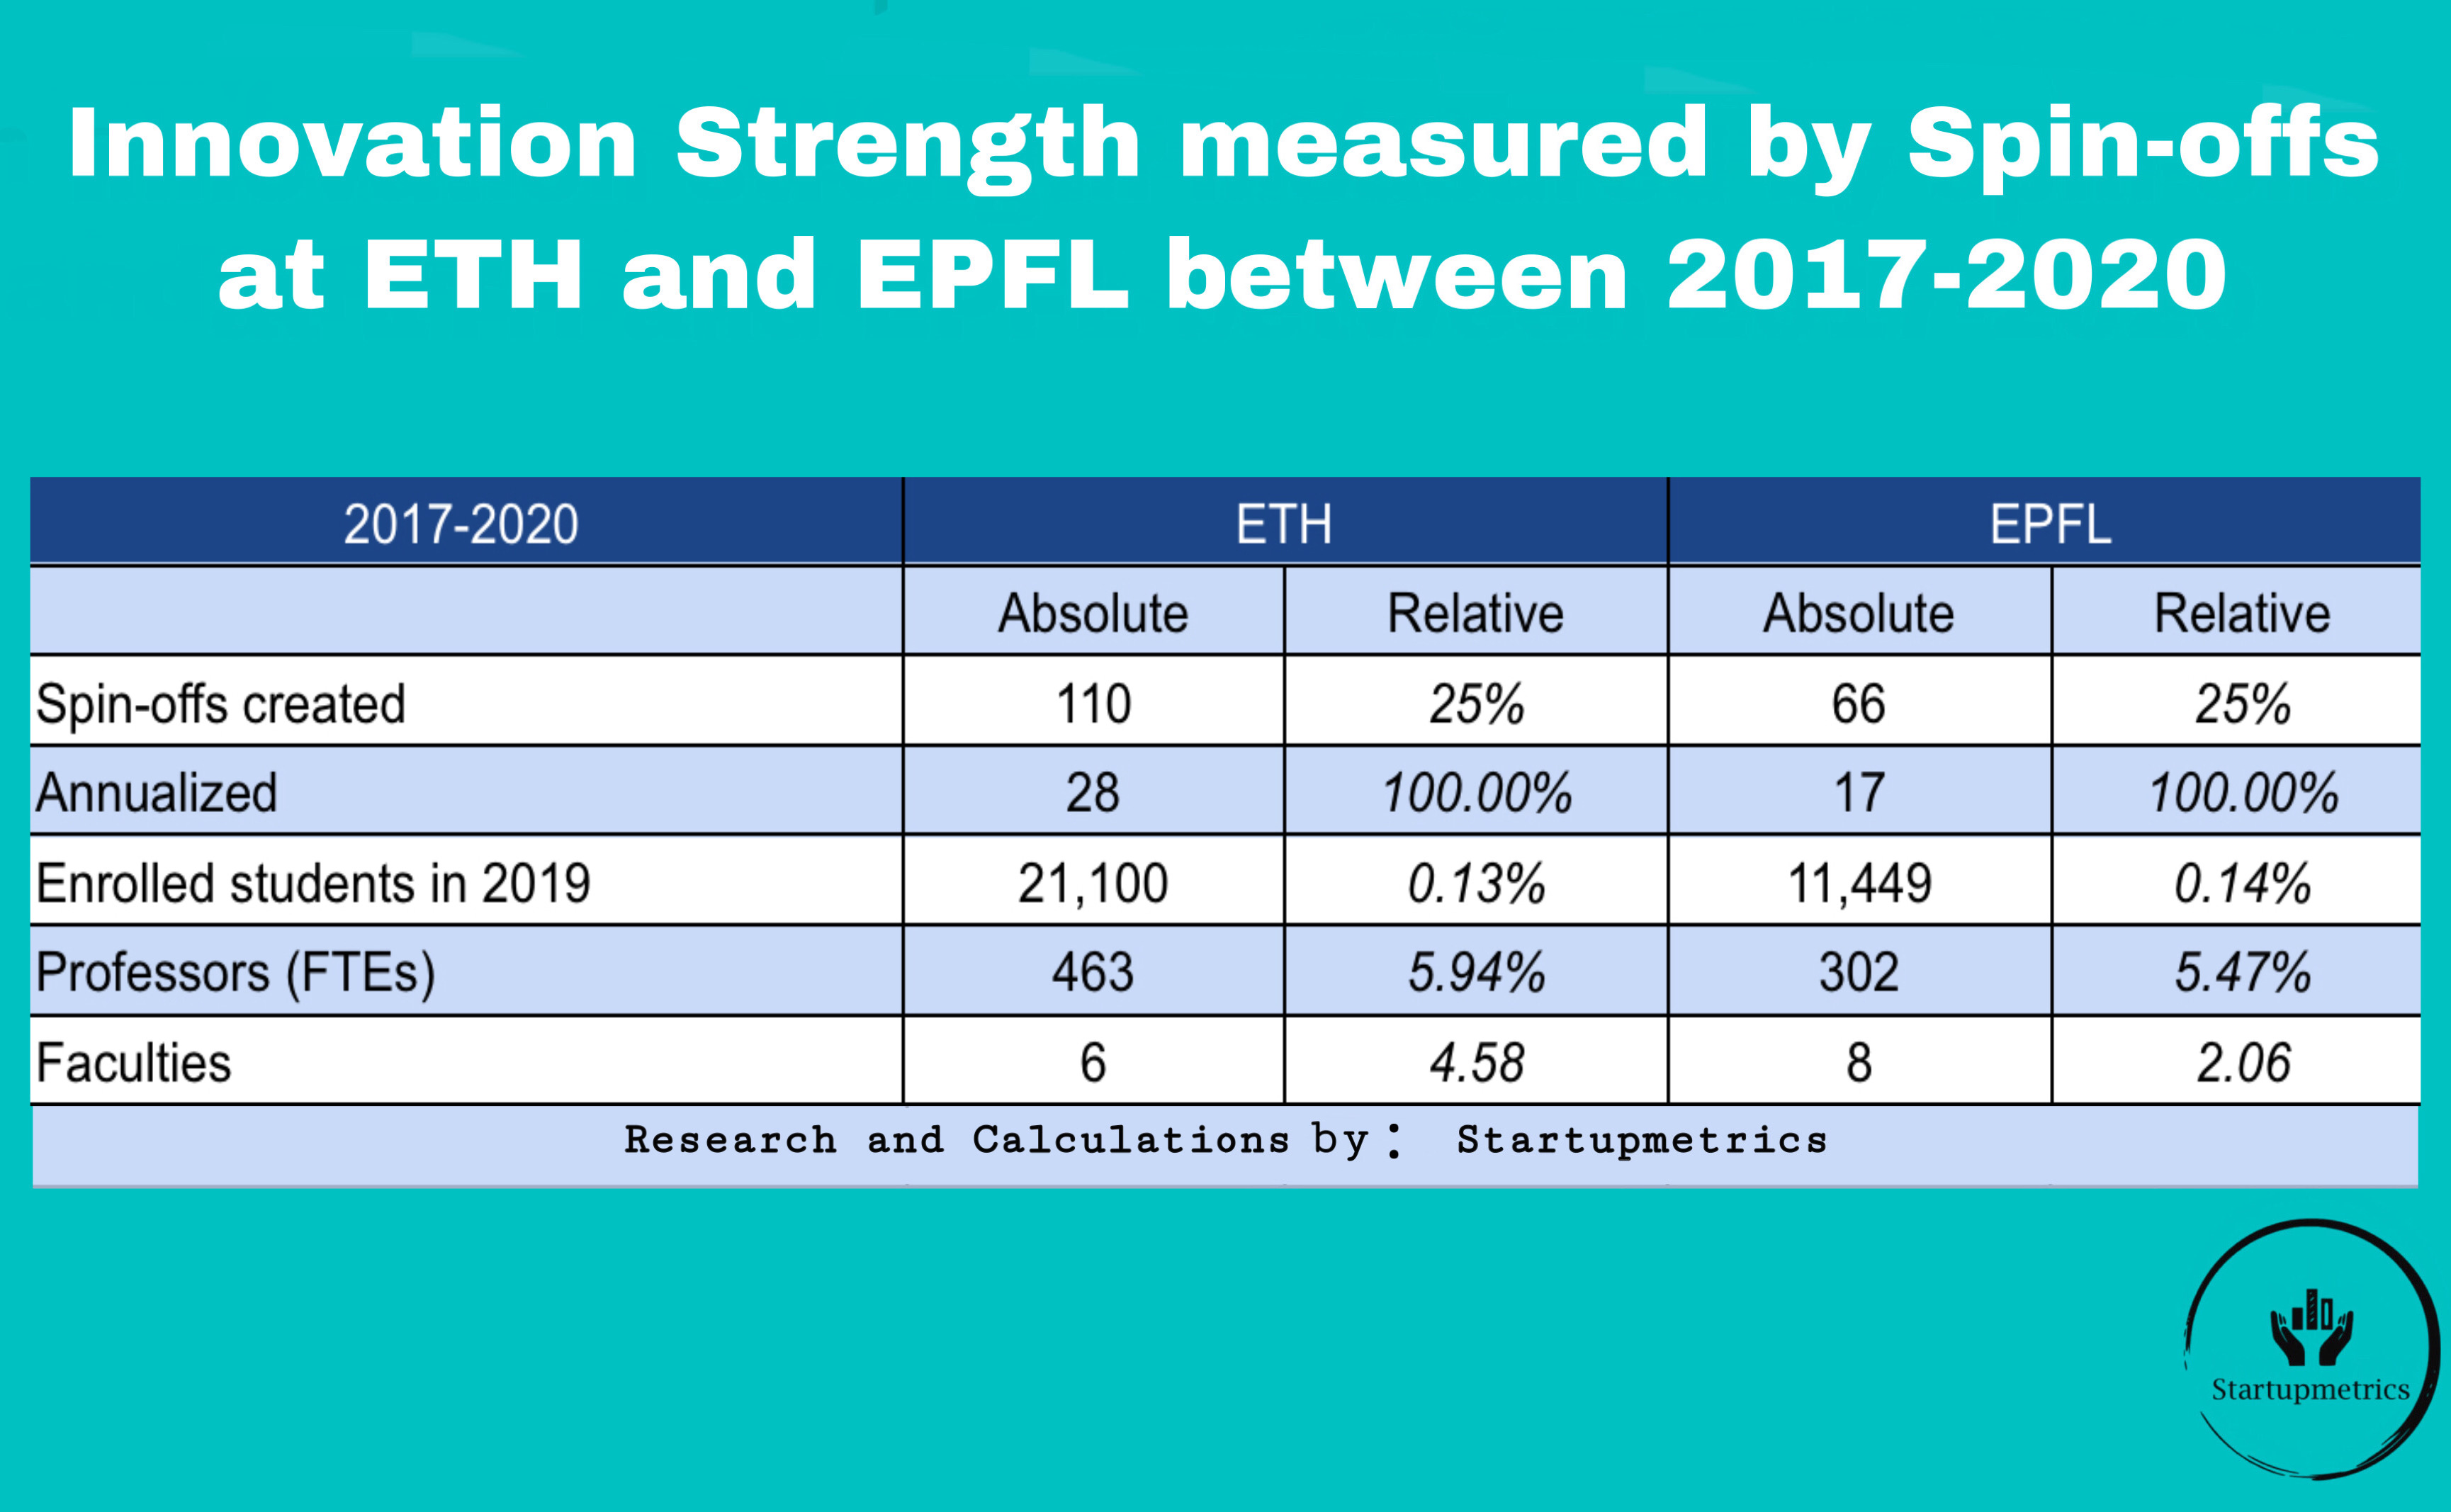 Innovation Strength measured by Spin-offs at ETH and EPFL between 2017-2020